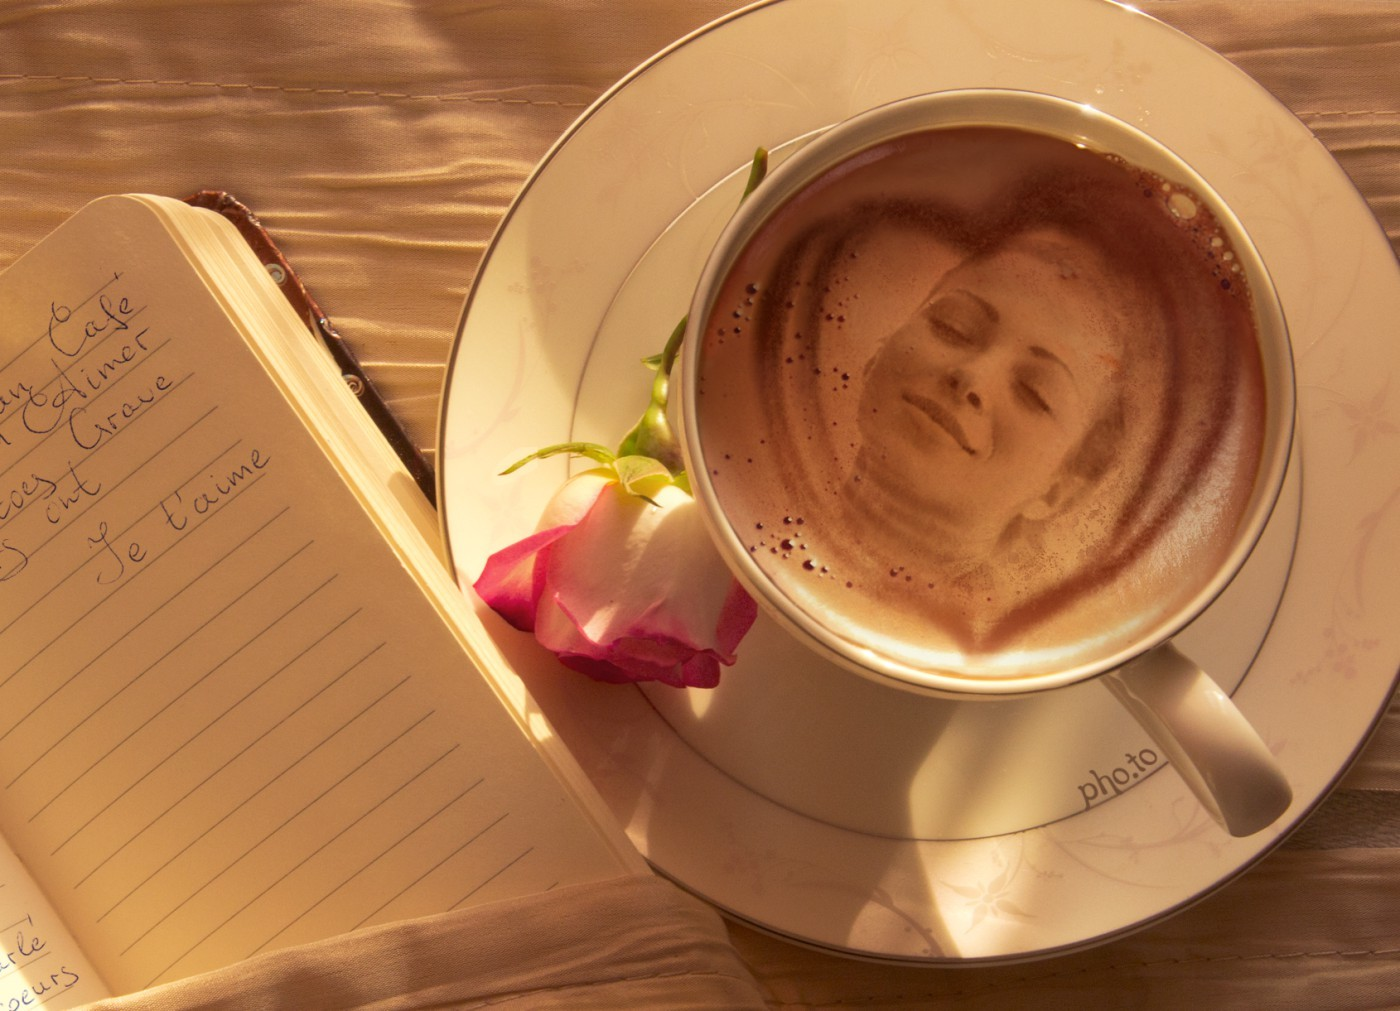 A love card is made with a romantic coffee frame.